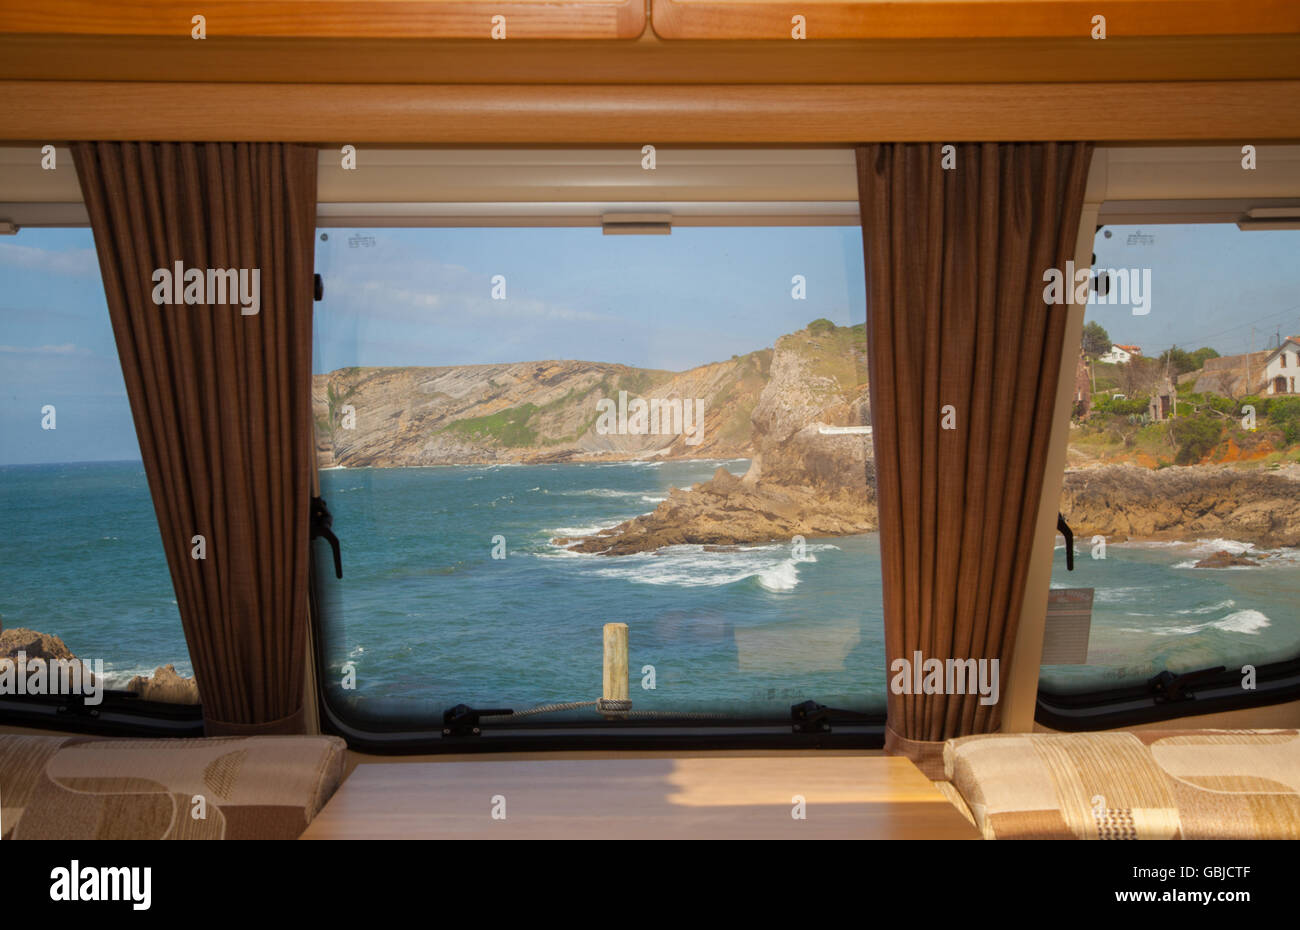 View from a caravan window of the sea and cliffs in Comillas Cantabria Northern Spain Stock Photo